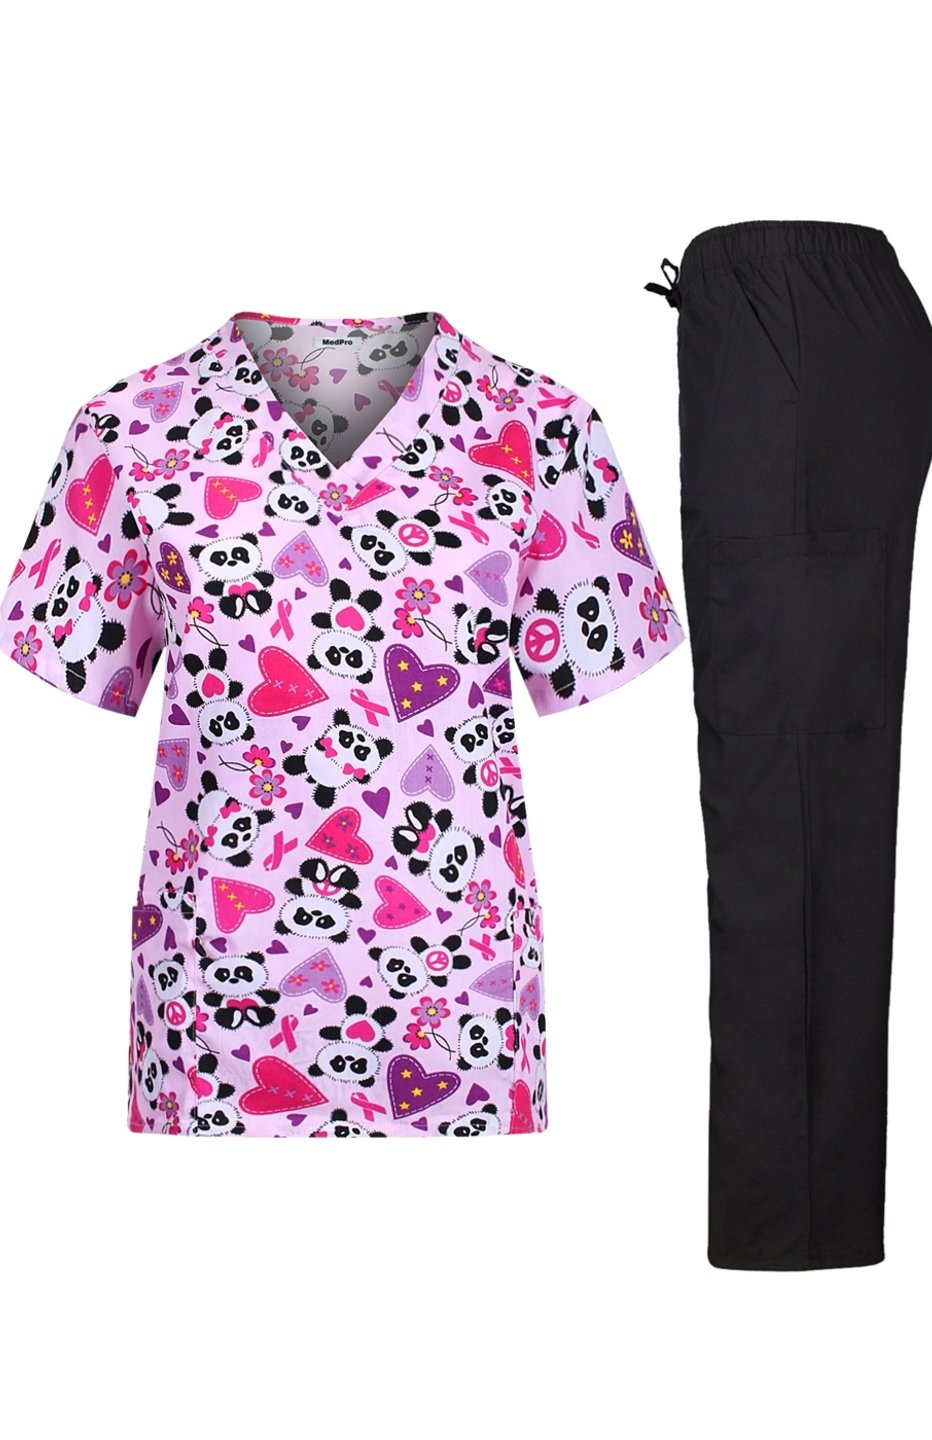 MedPro Women's Medical Scrub Set with Printed Wrap Top and Cargo Pants  Hot Pink L